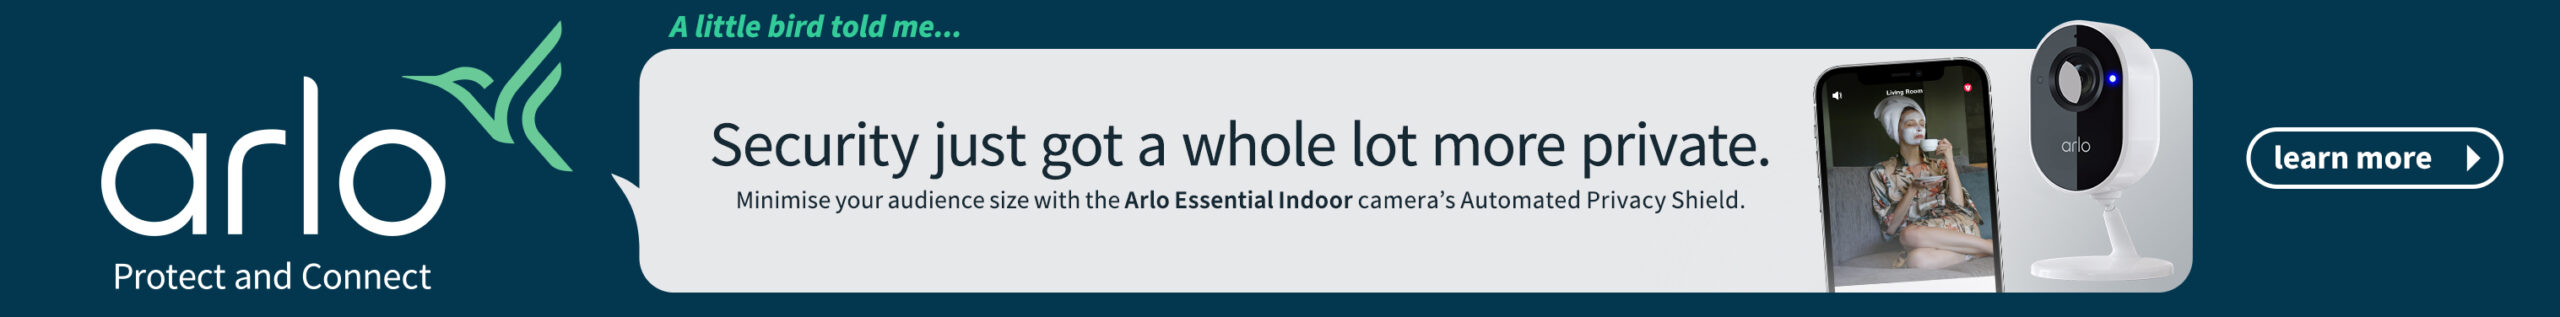 ARL0355 Arlo ESS Indoor Generic Banner 728x90 V4 scaled BBC + YouTube Hook Up